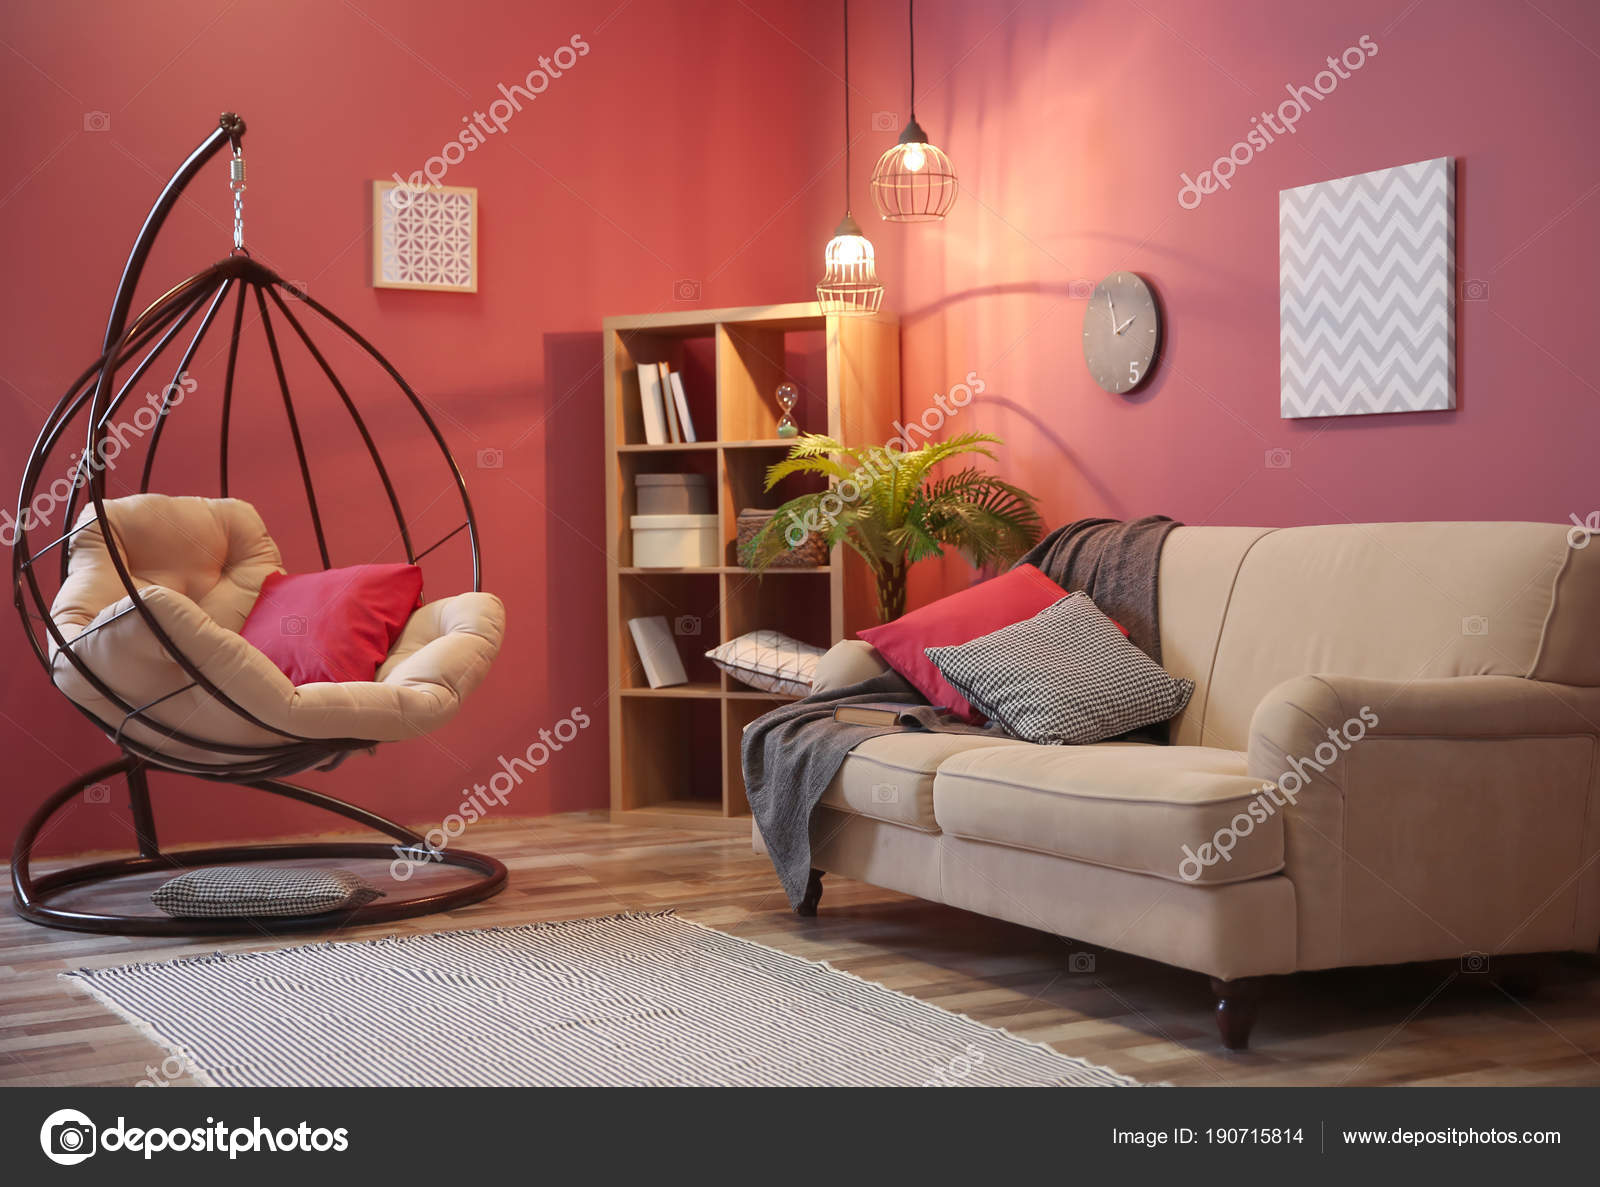 Elegant Living Room Interior With Comfortable Sofa And Swing Chair Stock Photo Image By Newafrica 190715814